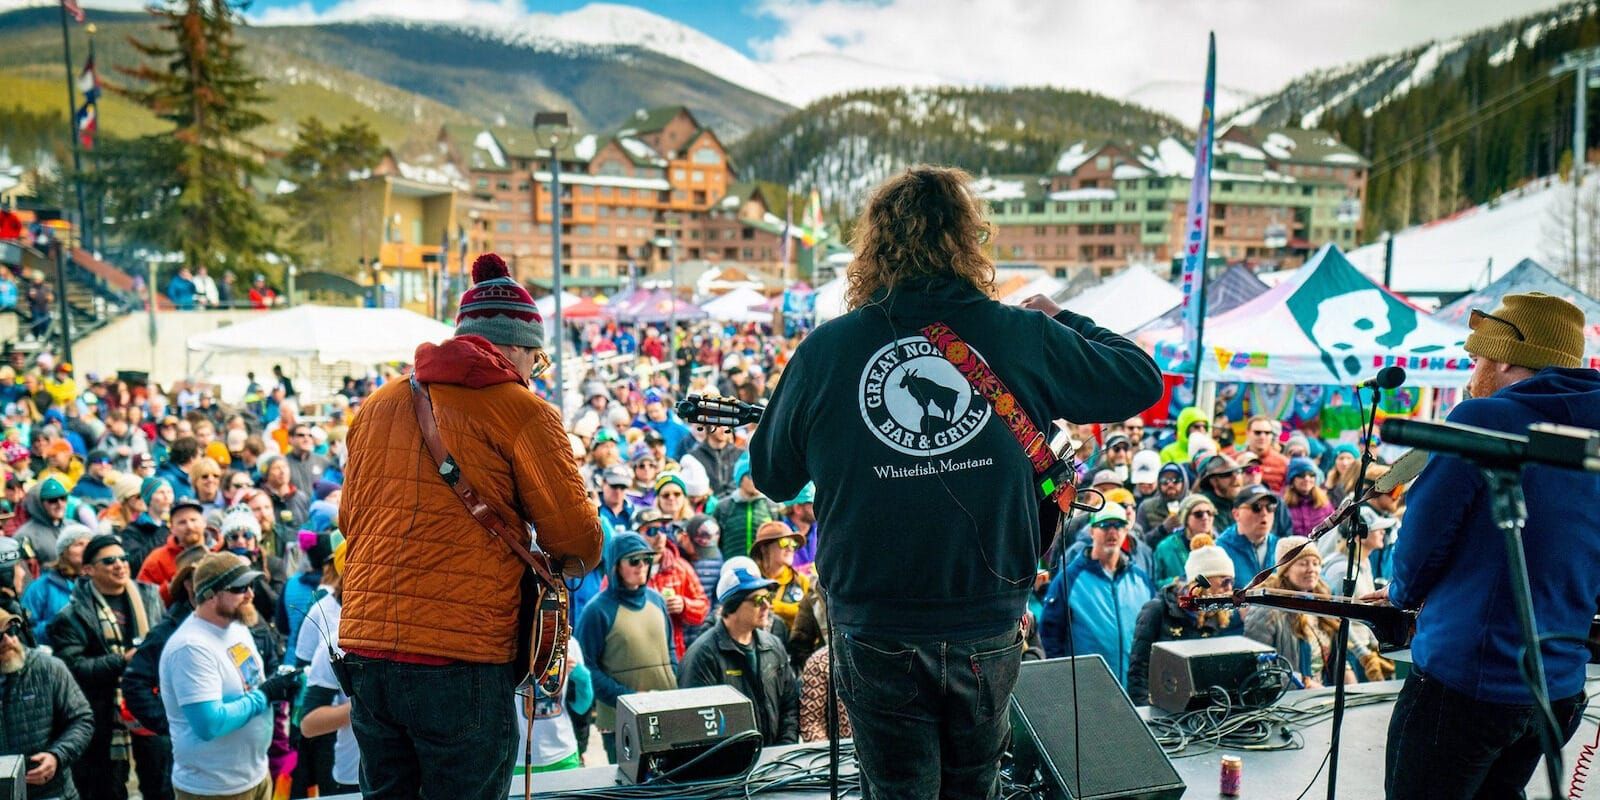 Image of a band performing at Winter Park Resort in Colorado